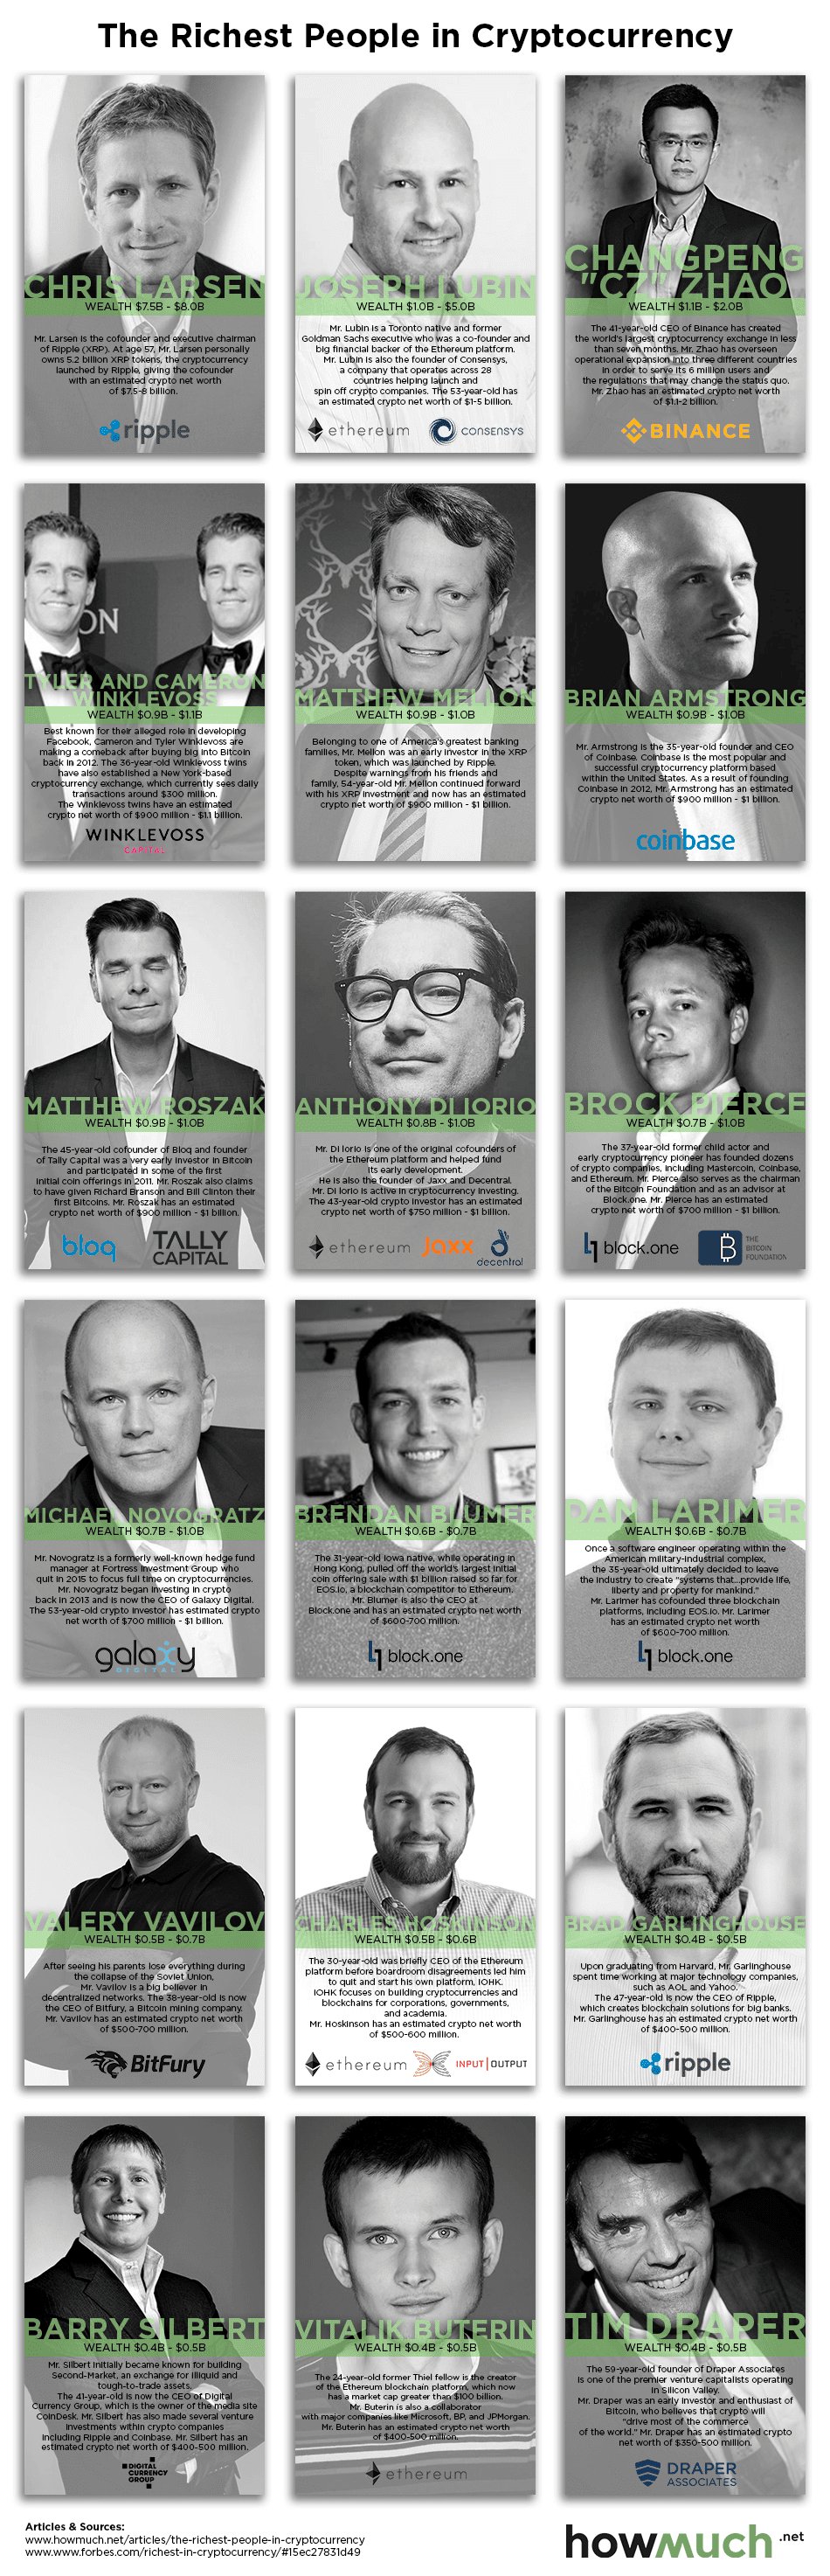 The Richest People In Cryptocurrency #Infographic